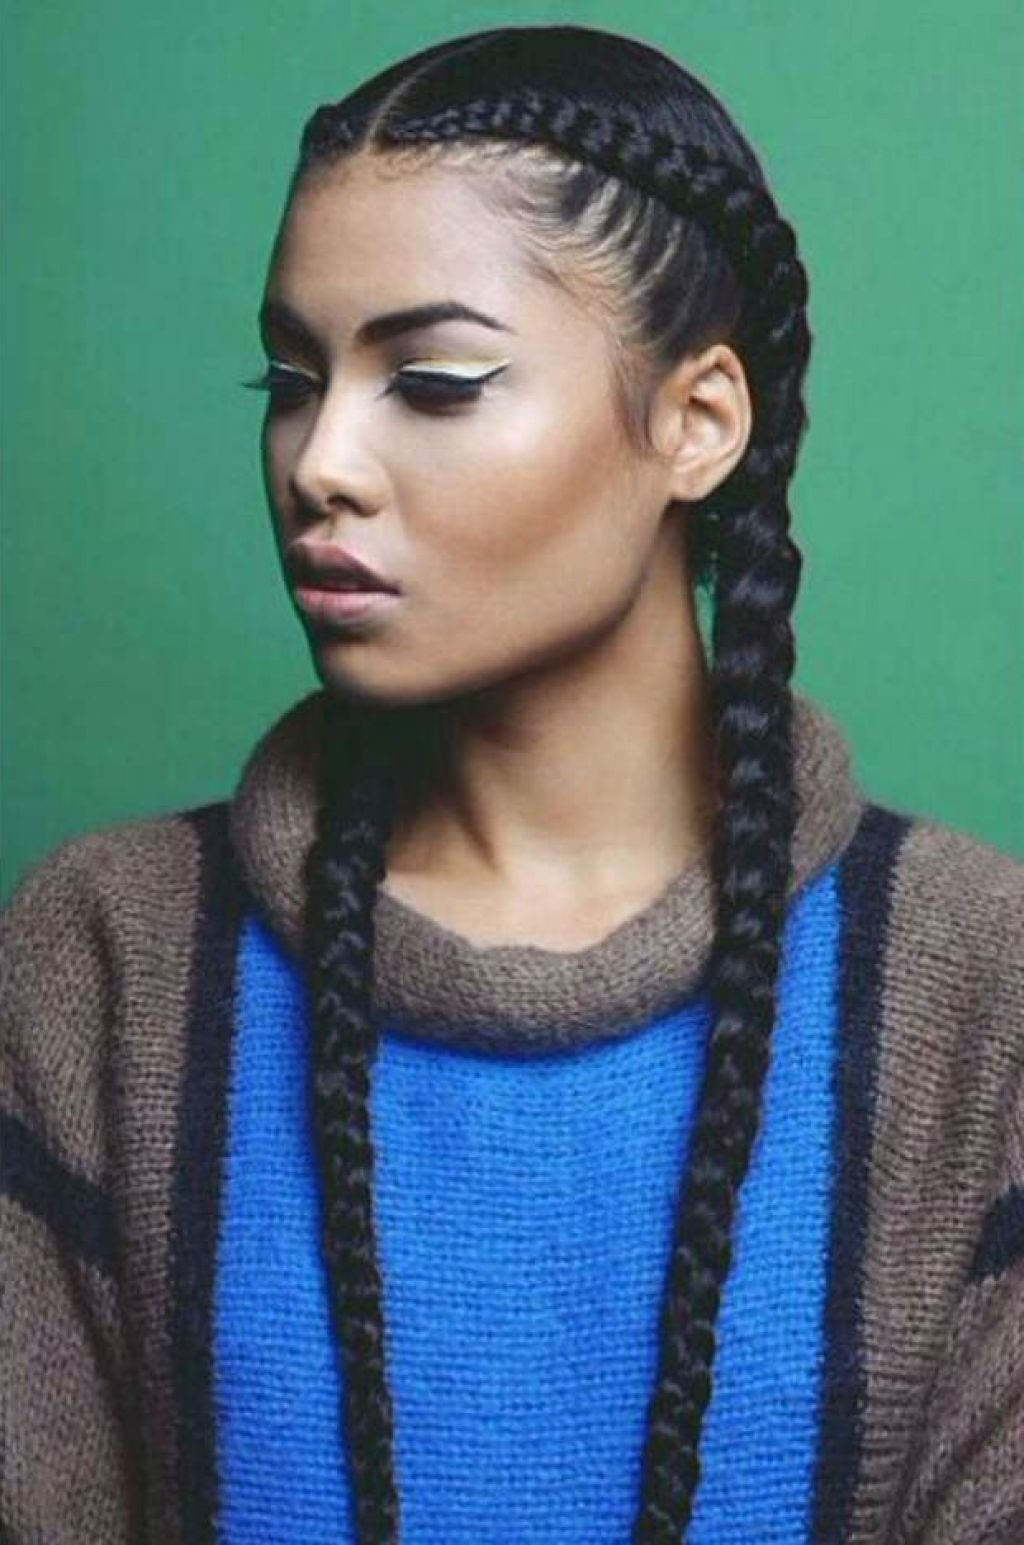 New Two Braid Hairstyles – Cute Hairstyles For Girls With Ideas With Pictures